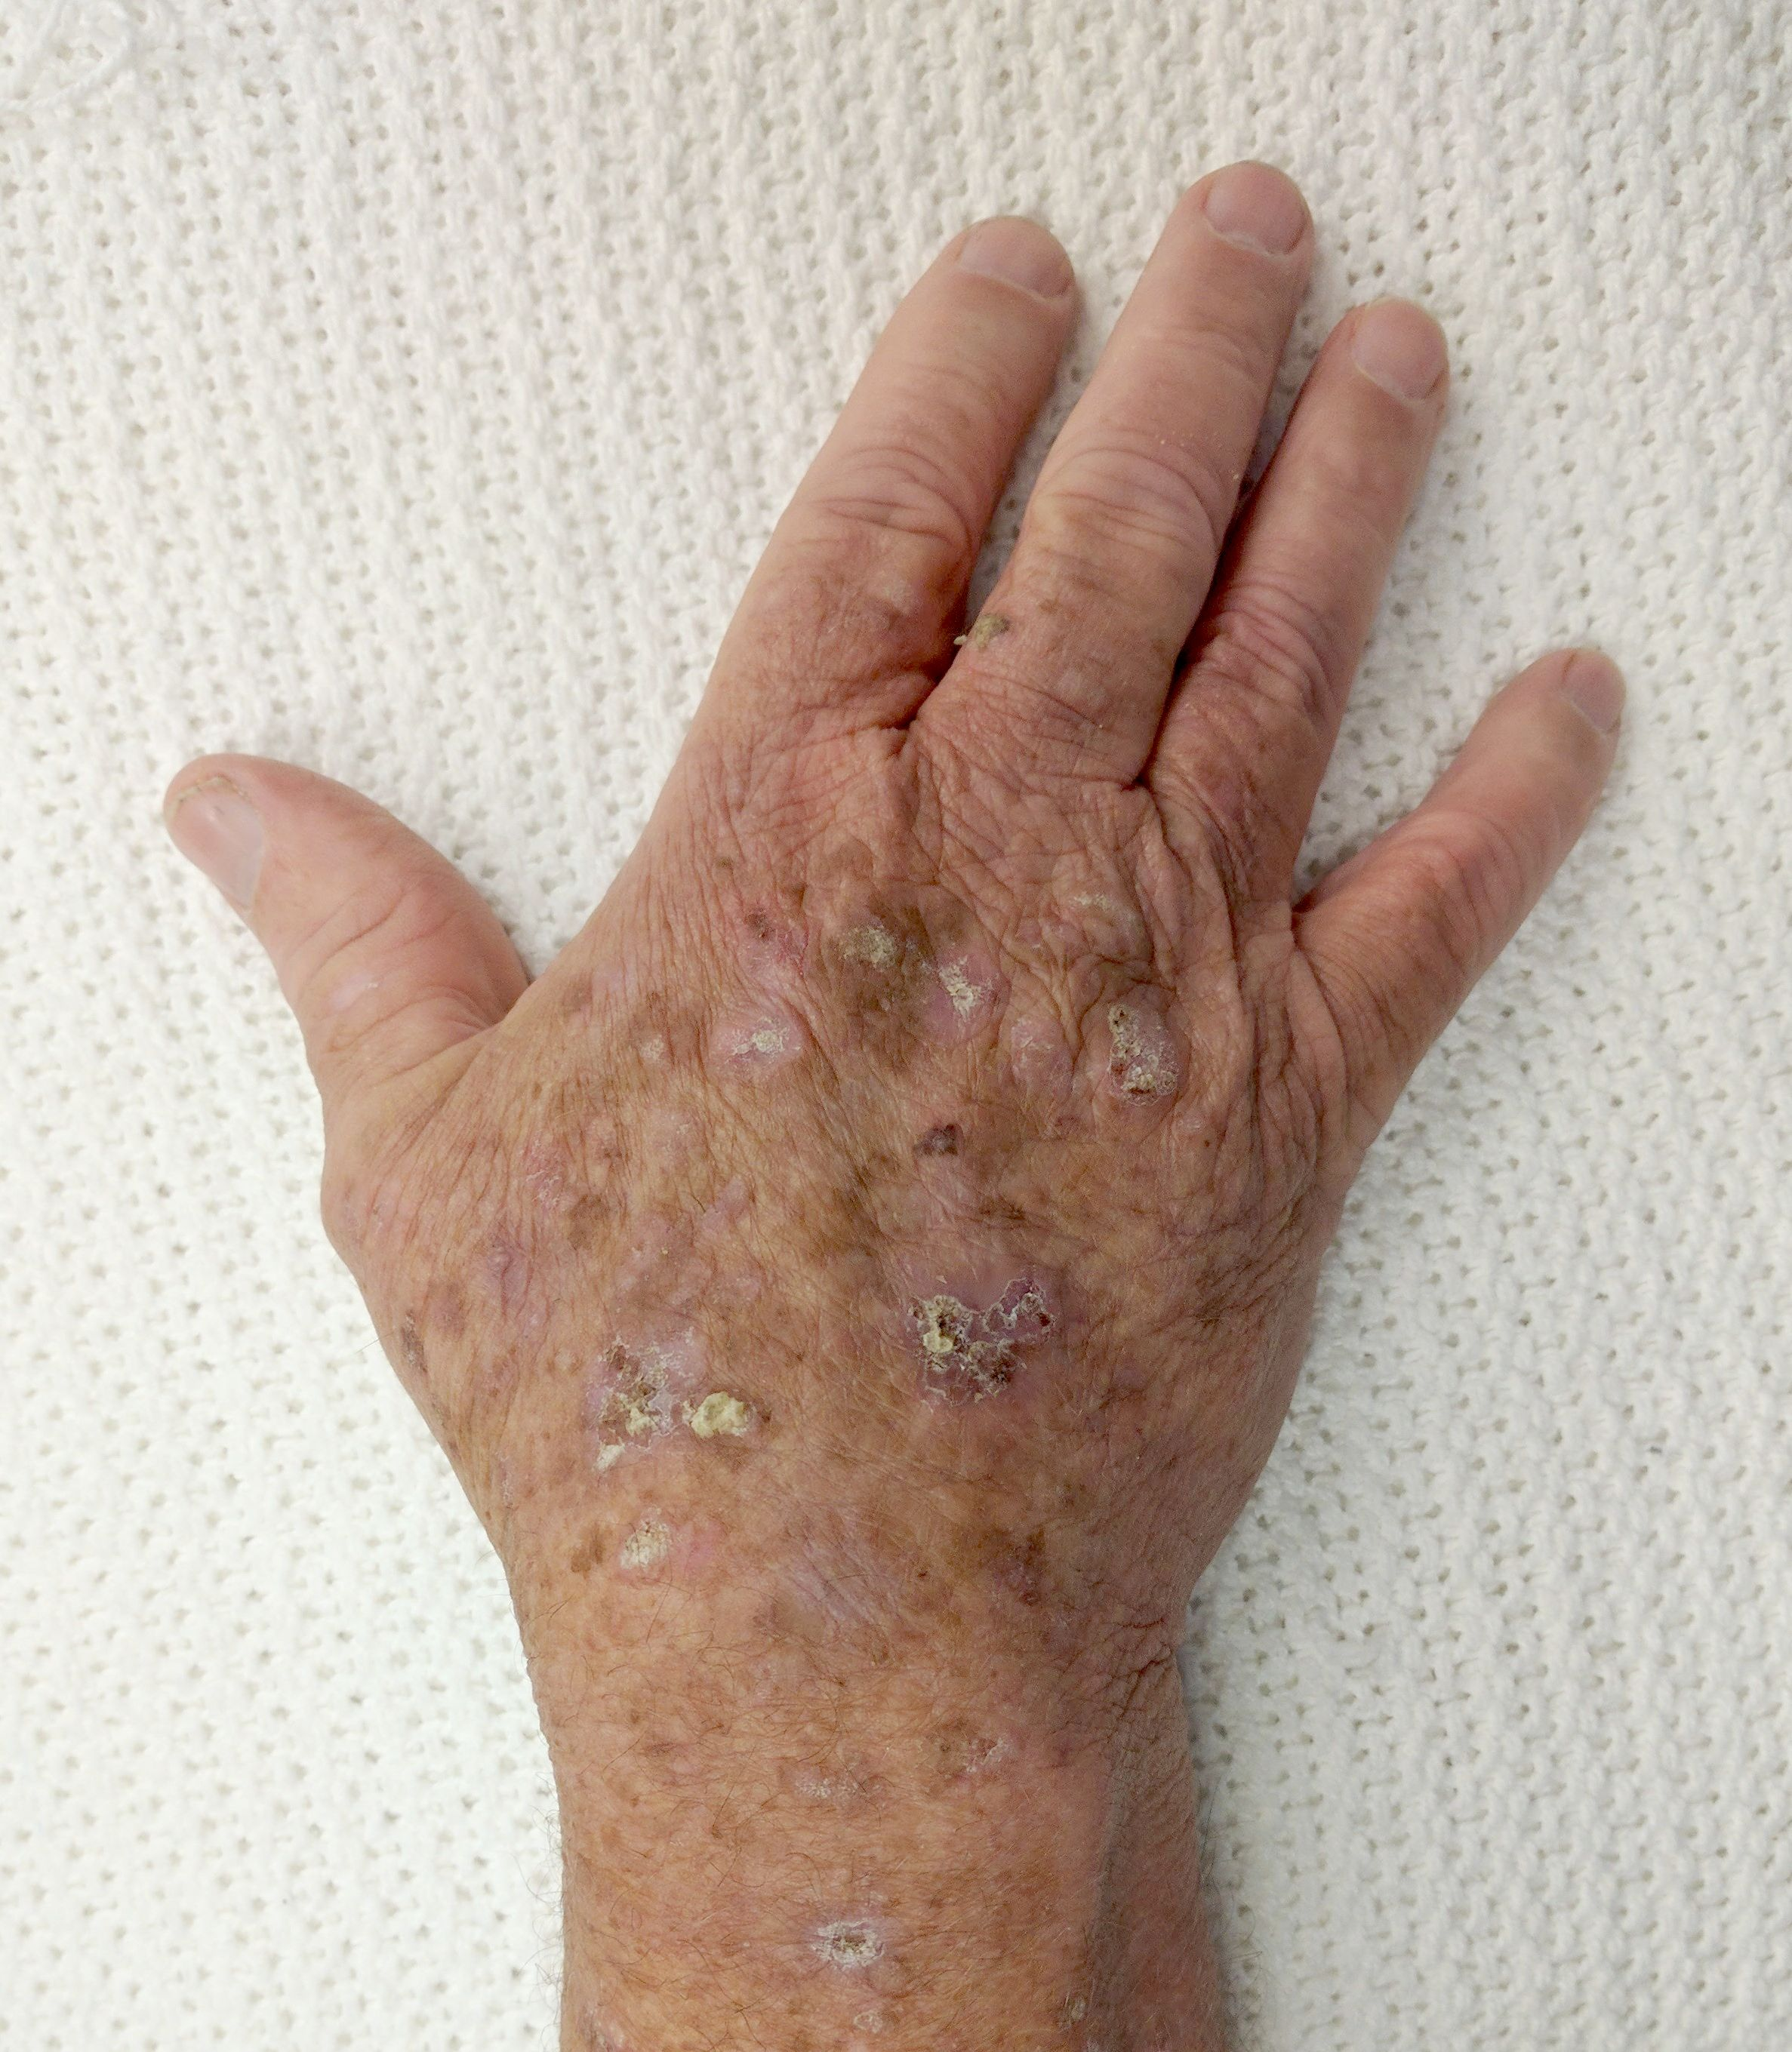 warts on hands from sun cancer blanco que es